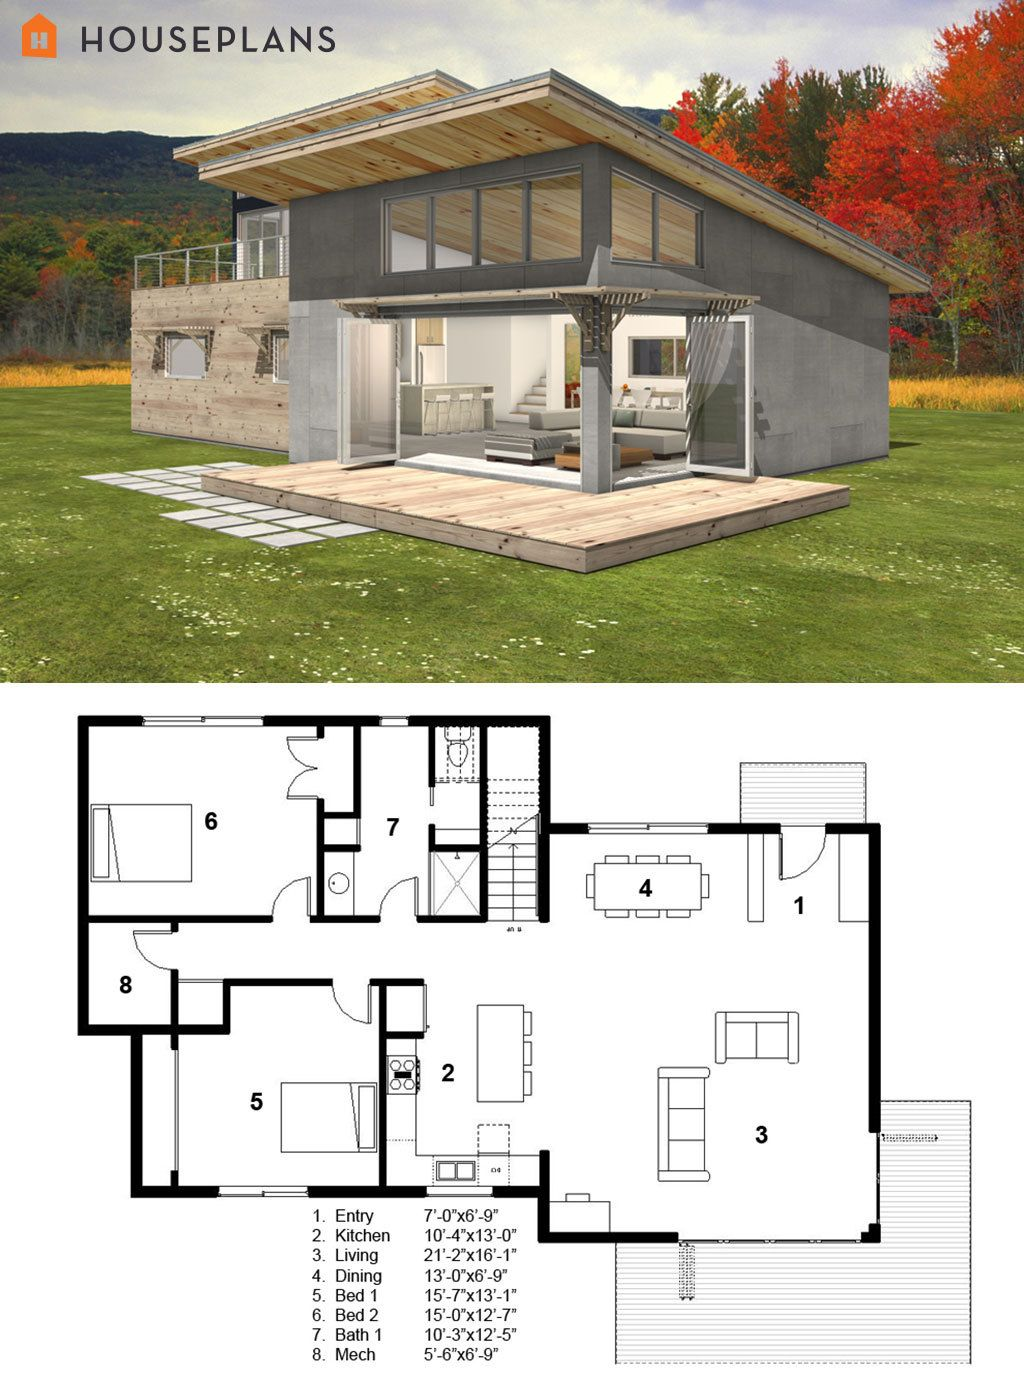 Modern style house plan 3 beds baths 2115 sq ft for Modern home plans with basement